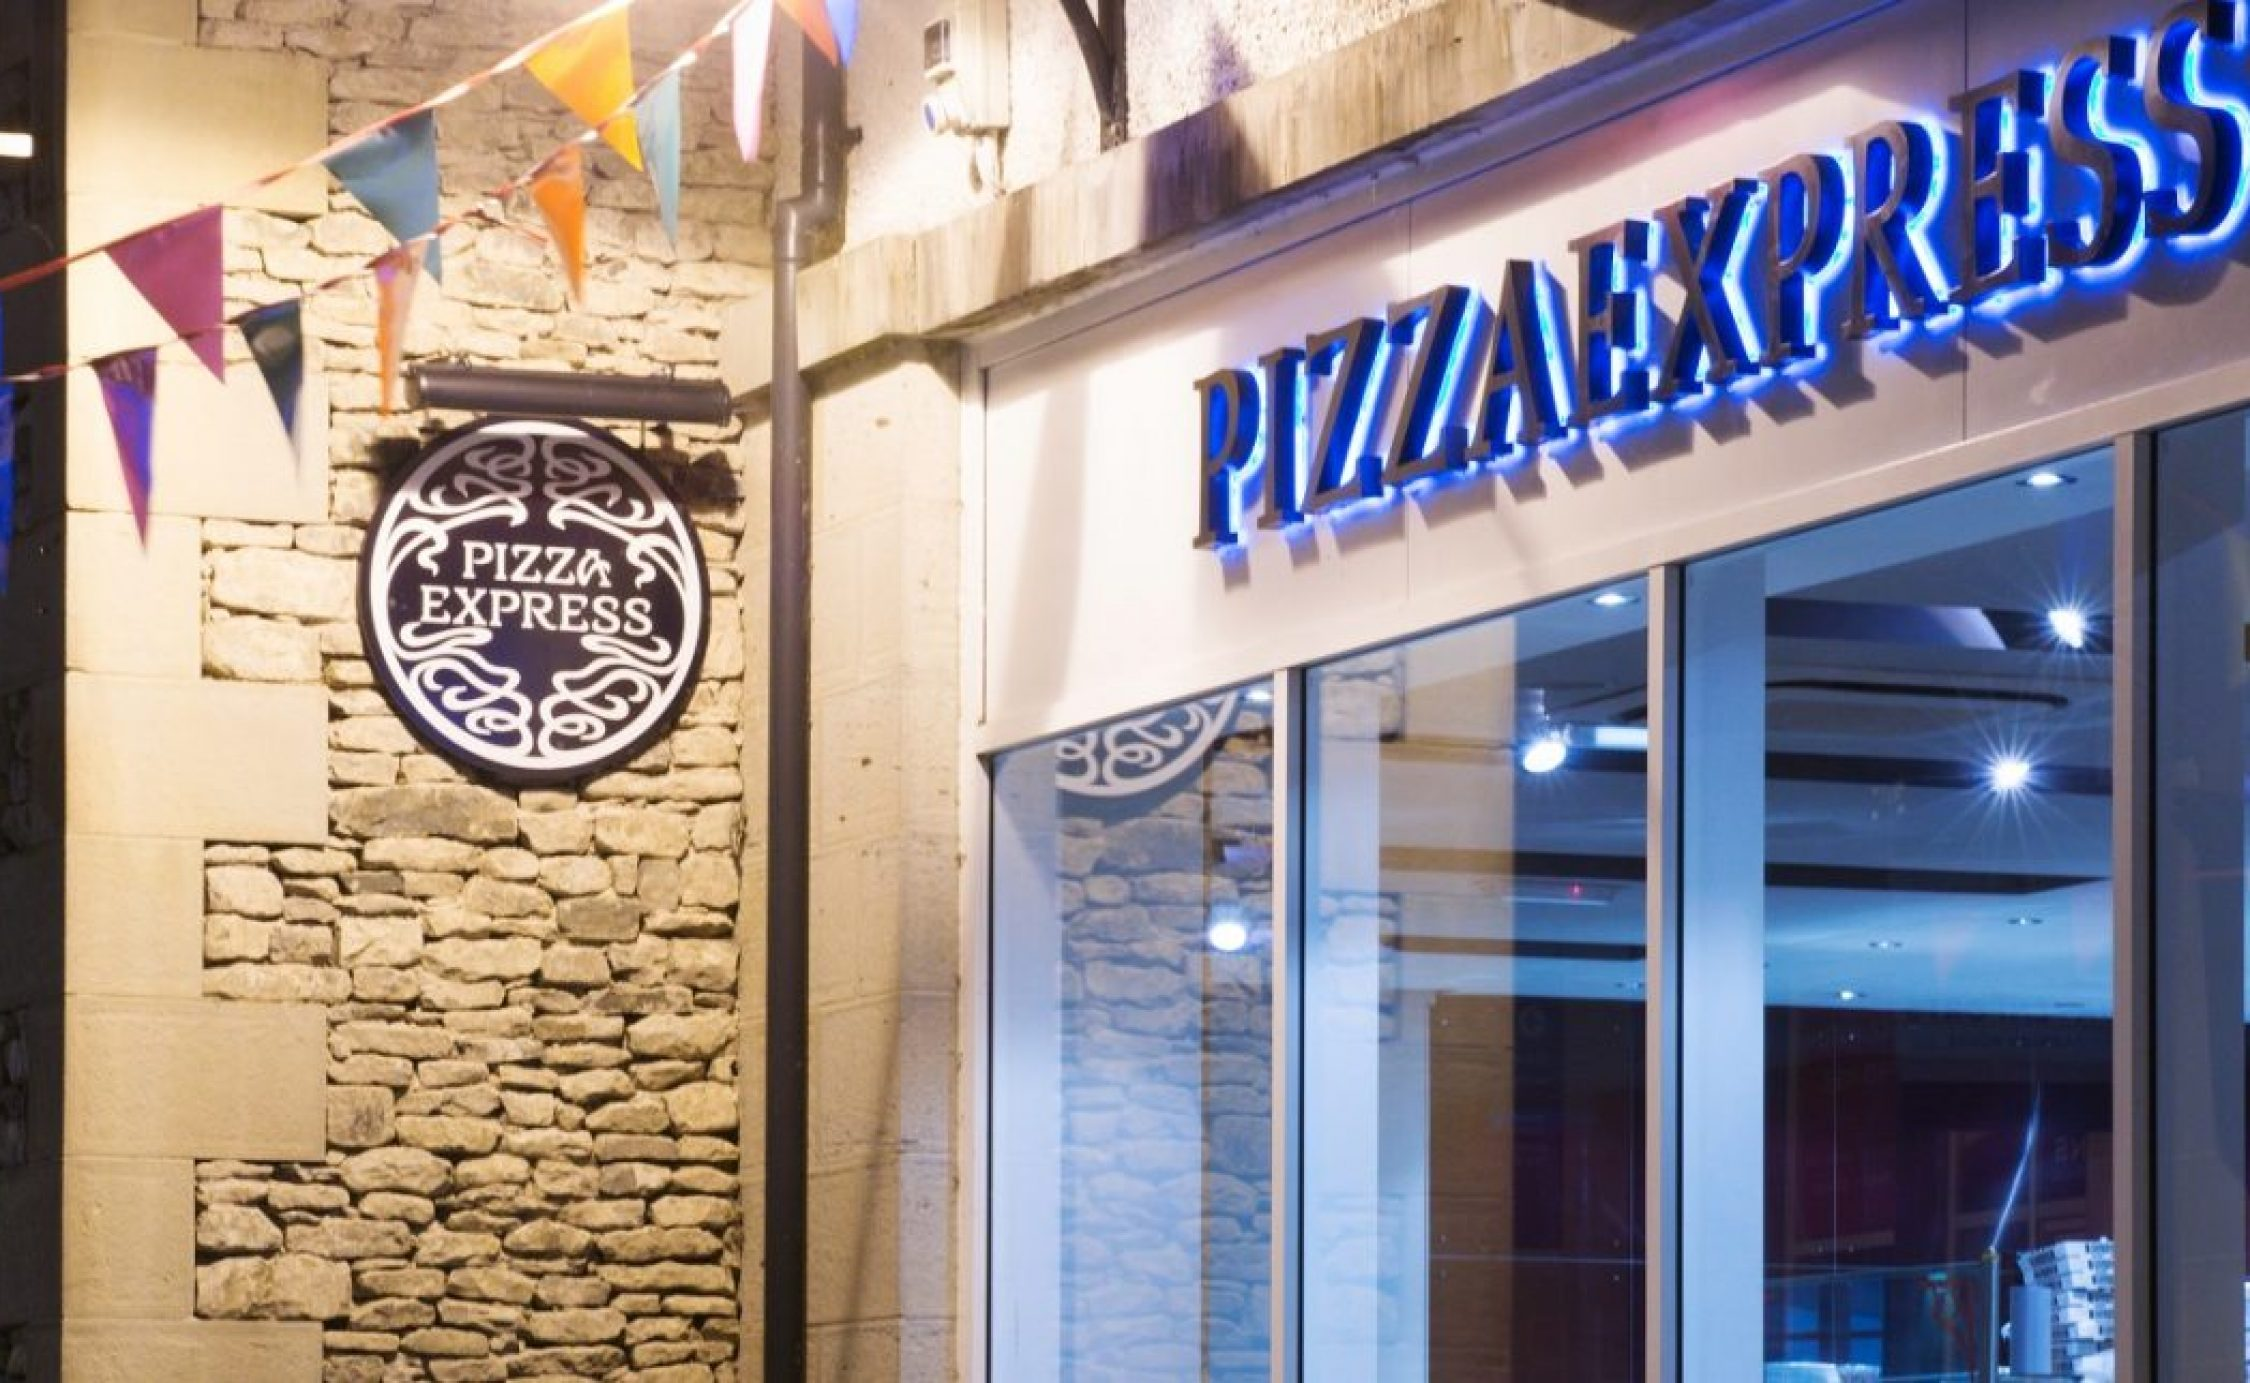 Kendal's pizza express